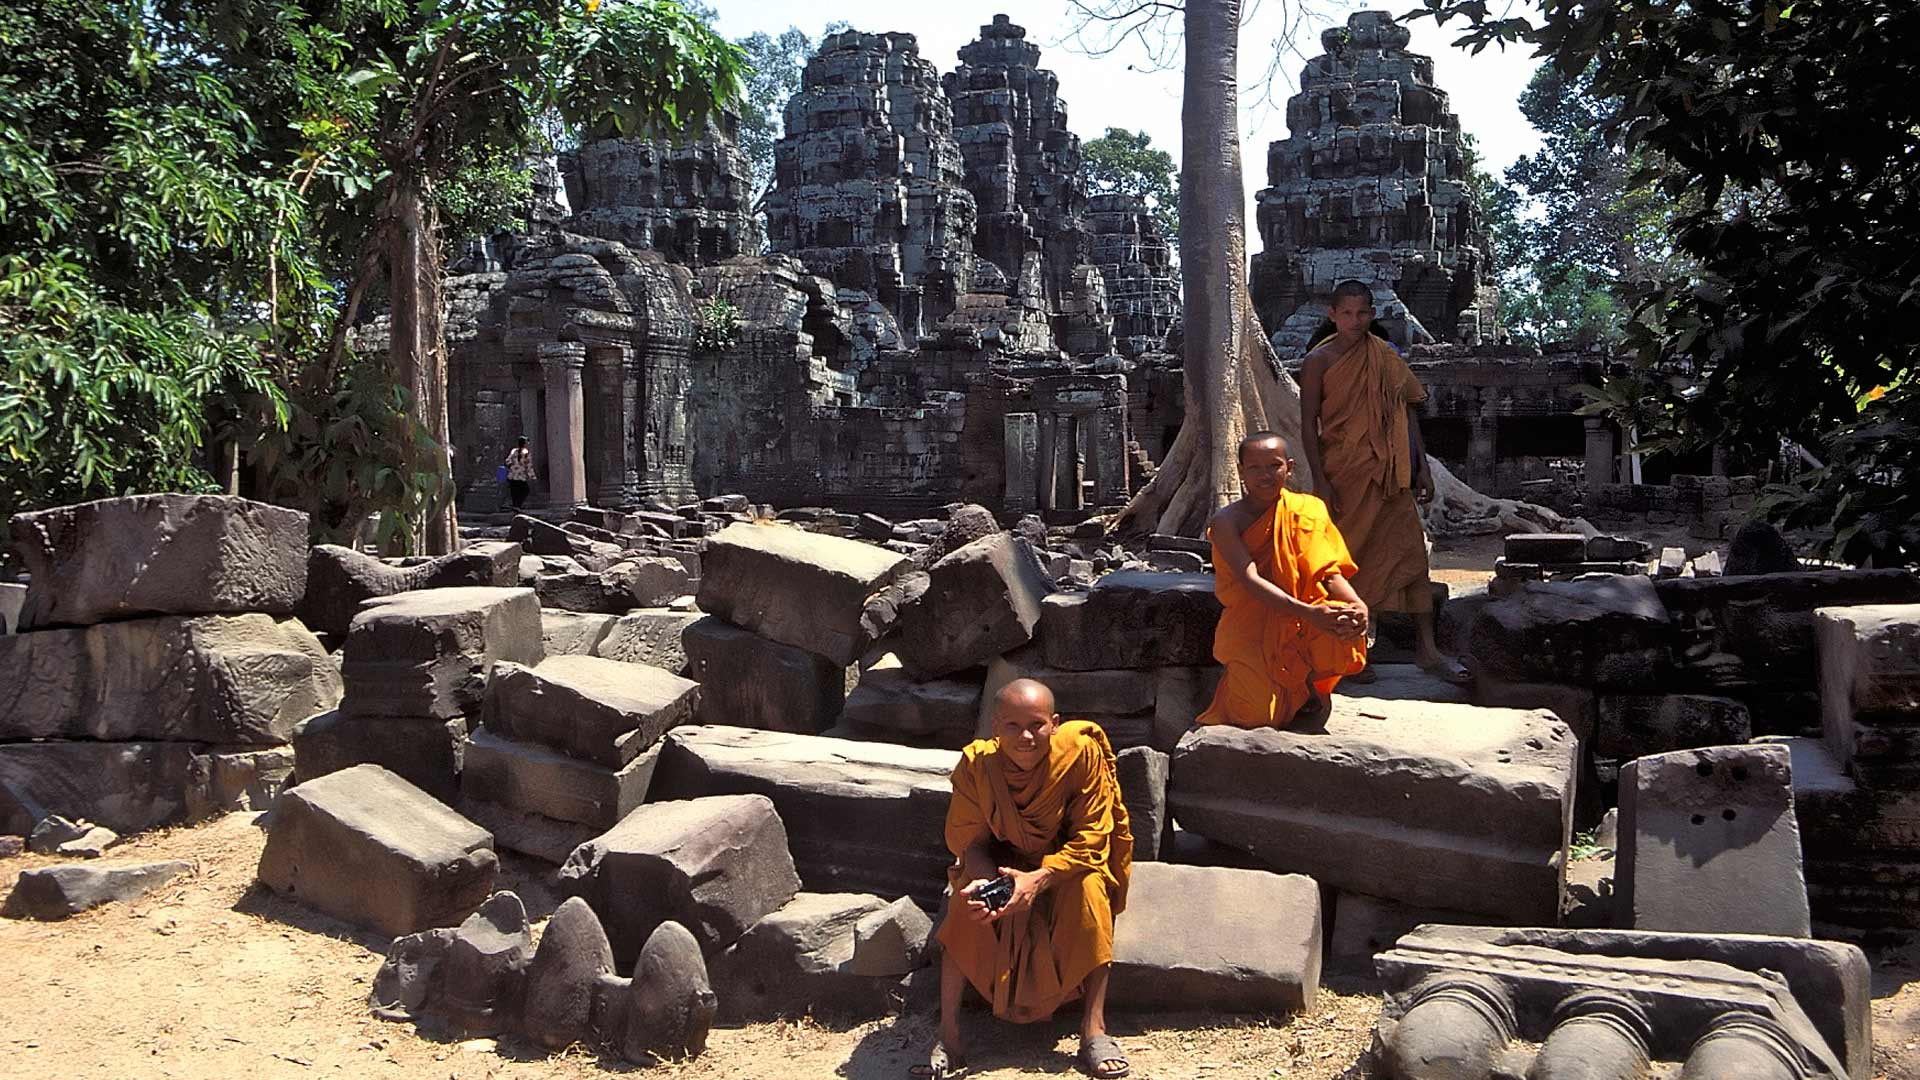 Buddhist monks in the courtyard of Banteay Kdei, Angkor, Siem Reap, Cambodia